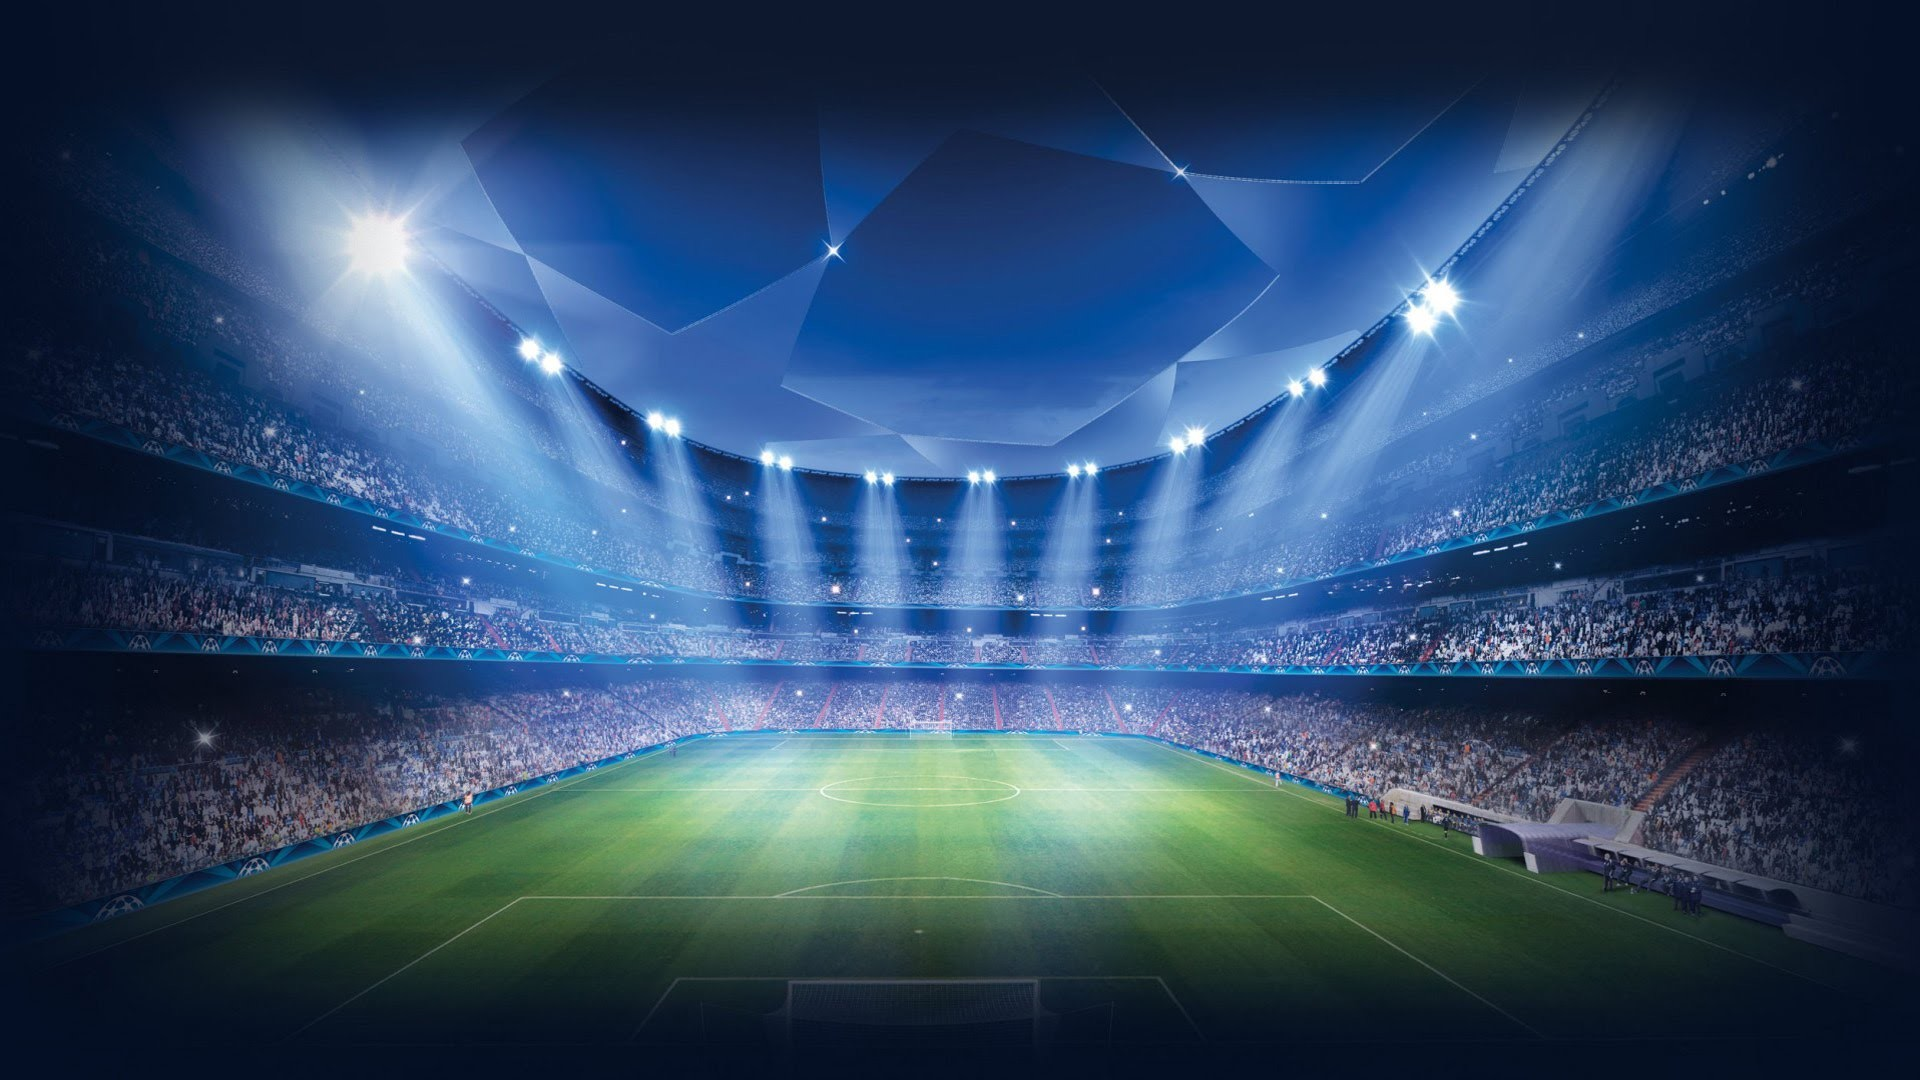 Football Today Best Video Addon On Kodi For Watching Football 2015